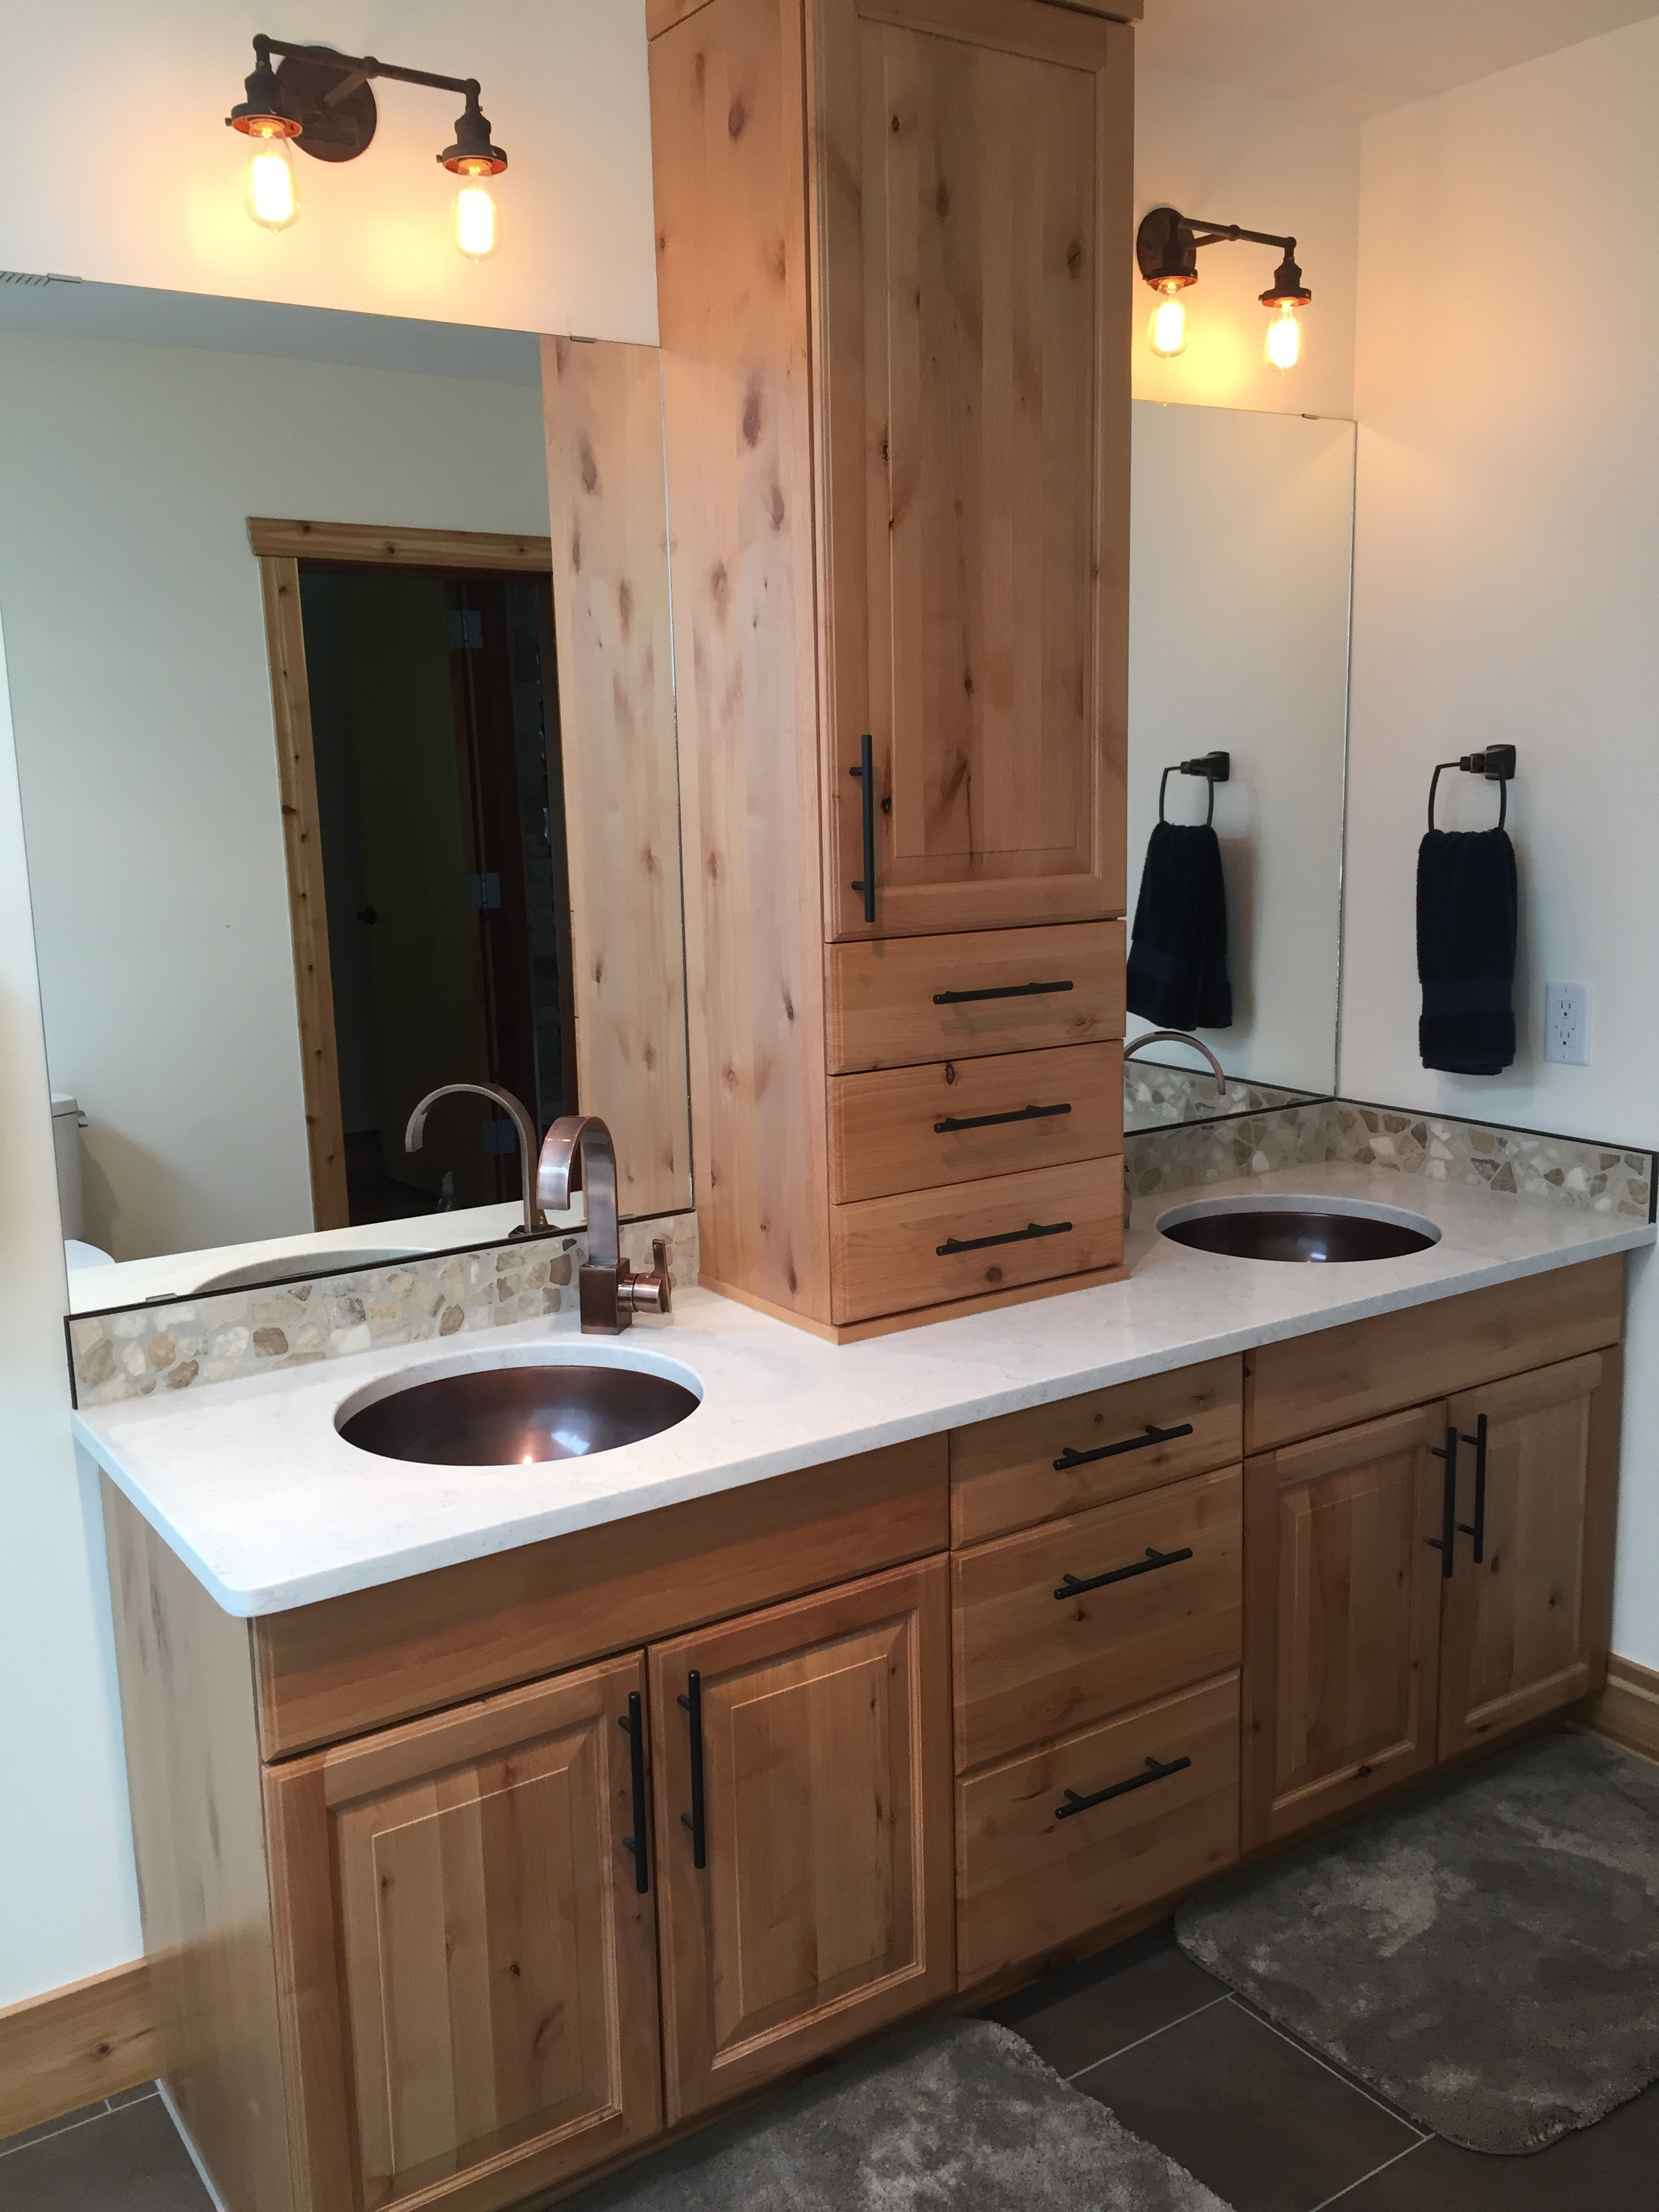 Custom hickory cabinetry, quartz countertops, industrial wall sconces with Edison bulbs.